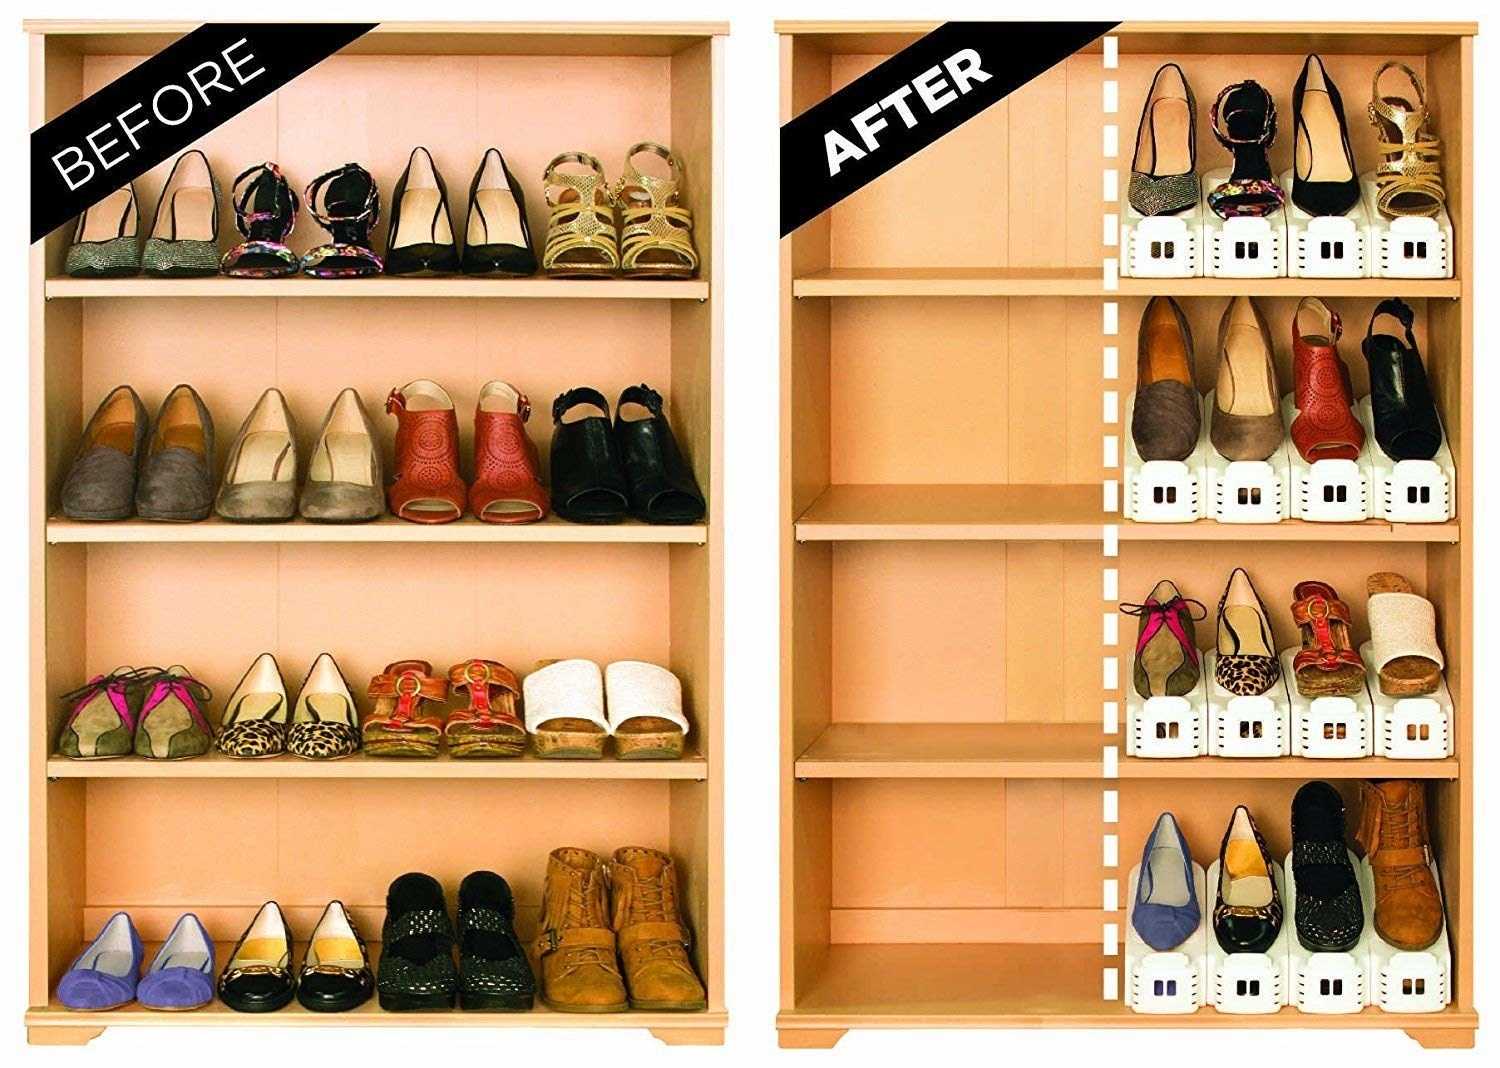 20 Useful Storage Products With Dramatic Before-And-After Photos